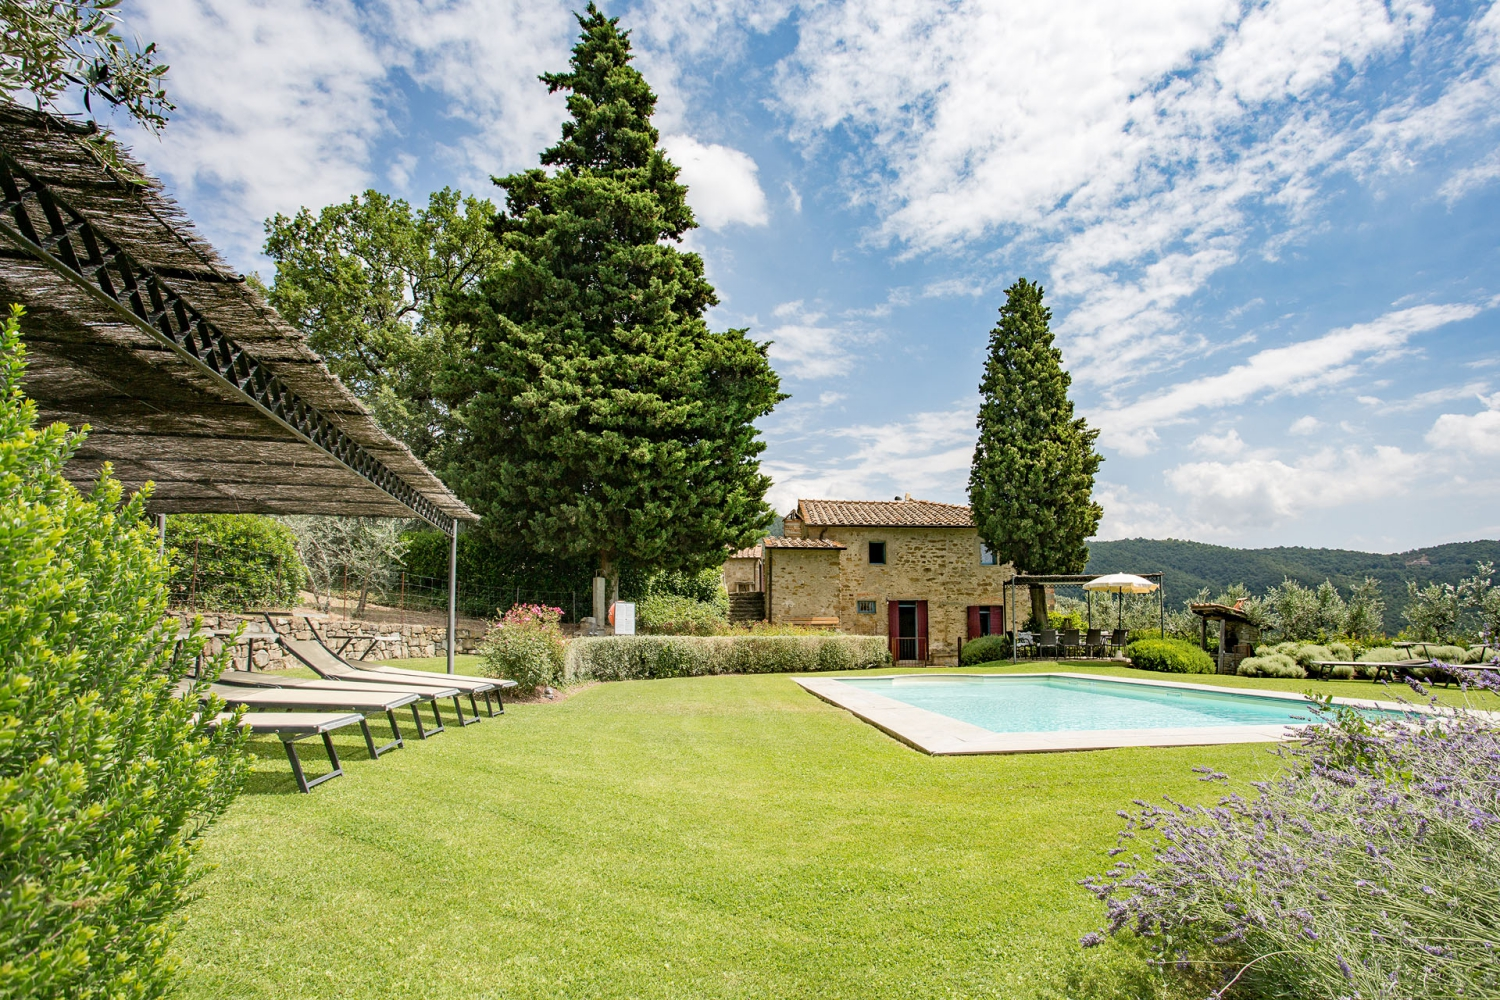 https://www.gastintoscane.nl/data/images/villa-san-martino/4f1a9389.jpg